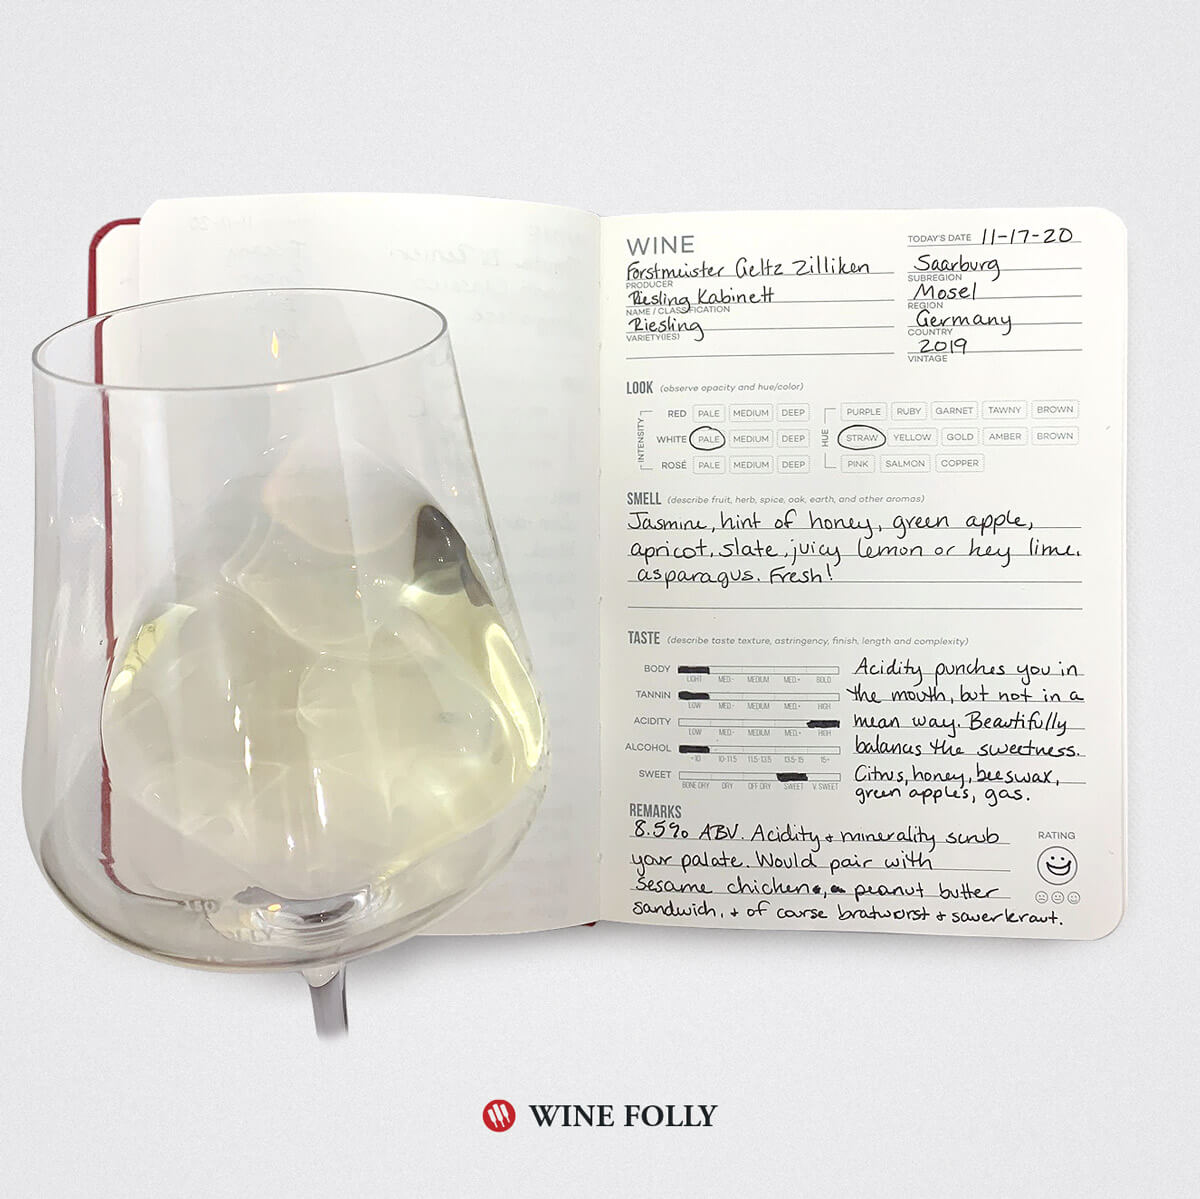 Riesling-Kabinett-Tasting-Notes-winefolly